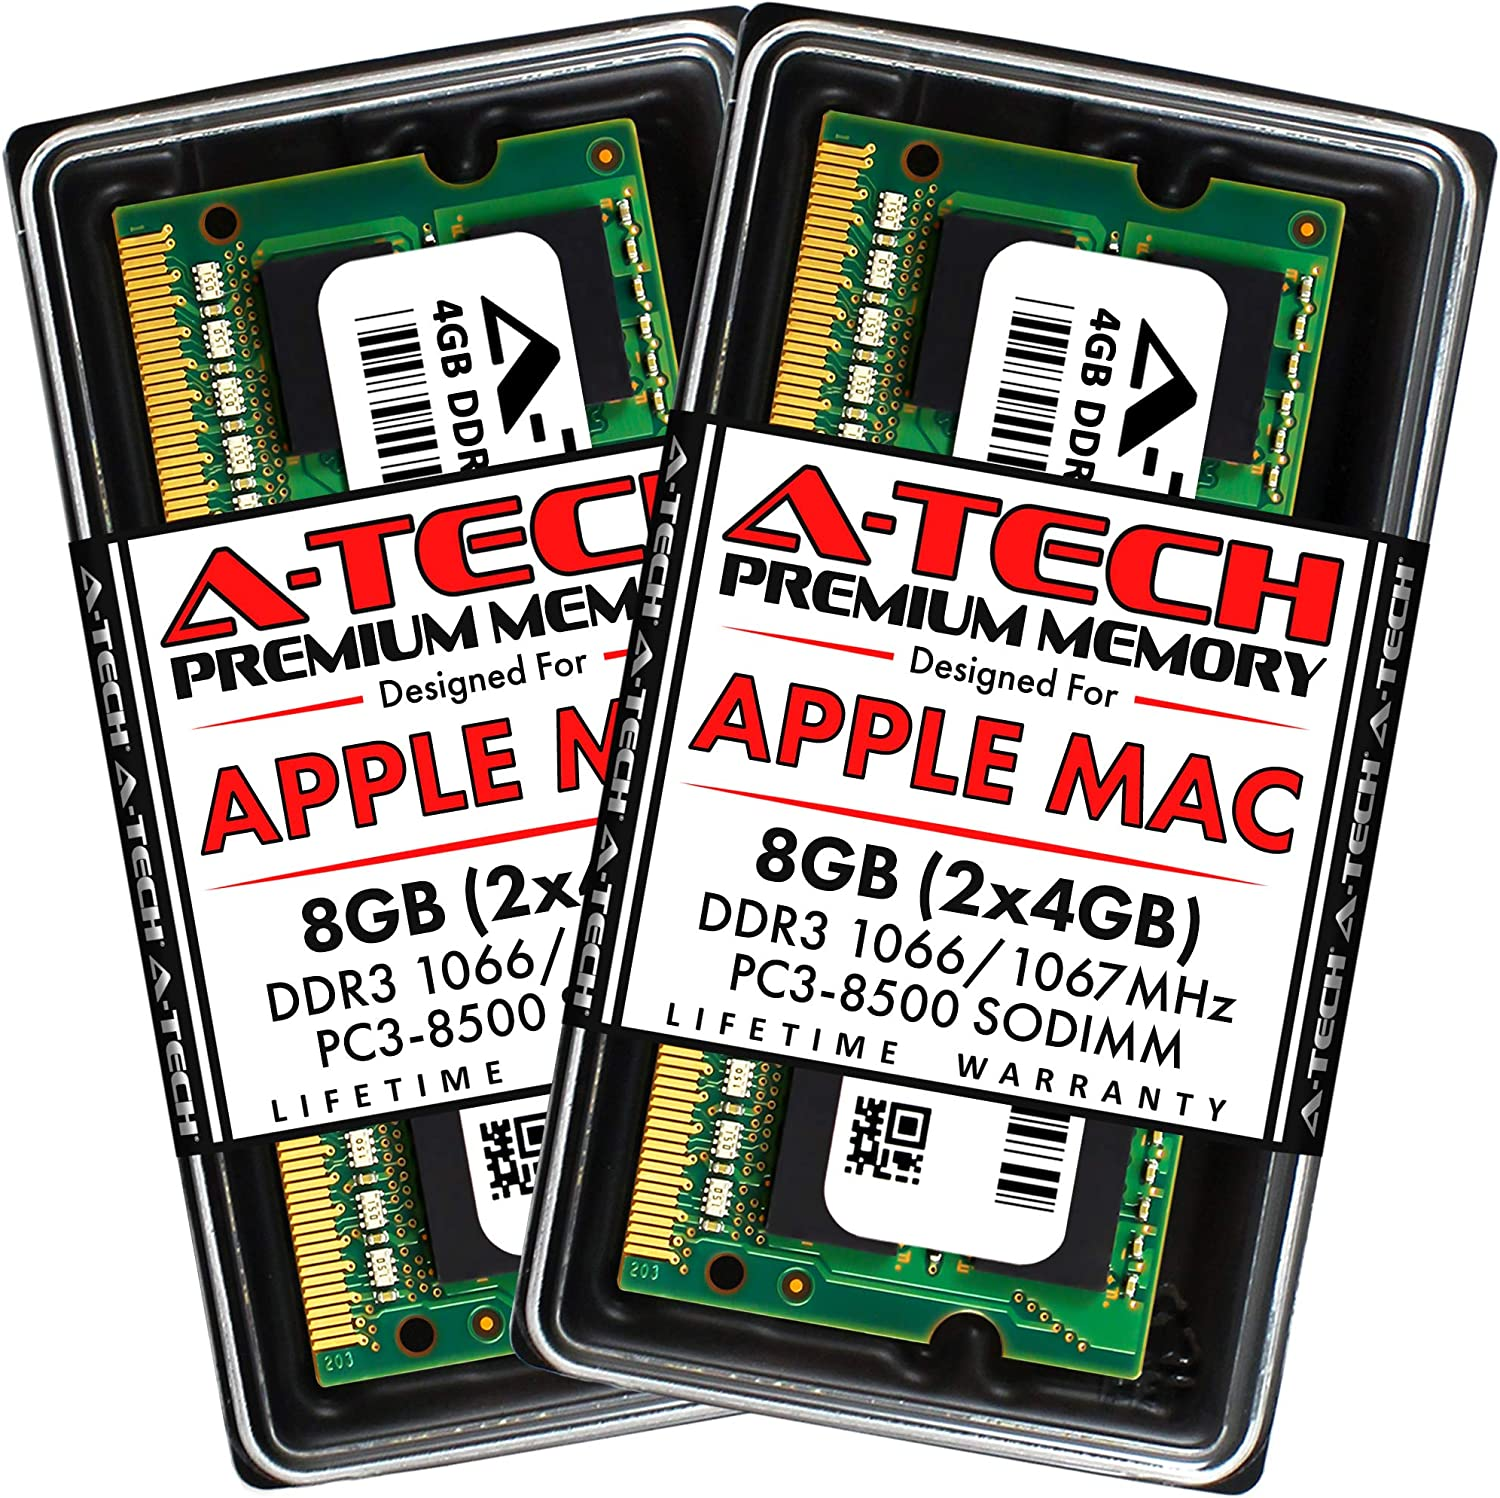 A-Tech 8GB Kit (2x4GB) DDR3 1066MHz / 1067MHz SODIMM PC3-8500 RAM for Apple MacBook, MacBook Pro, iMac, Mac Mini (Late 2008, Early/Mid/Late 2009, Mid 2010)